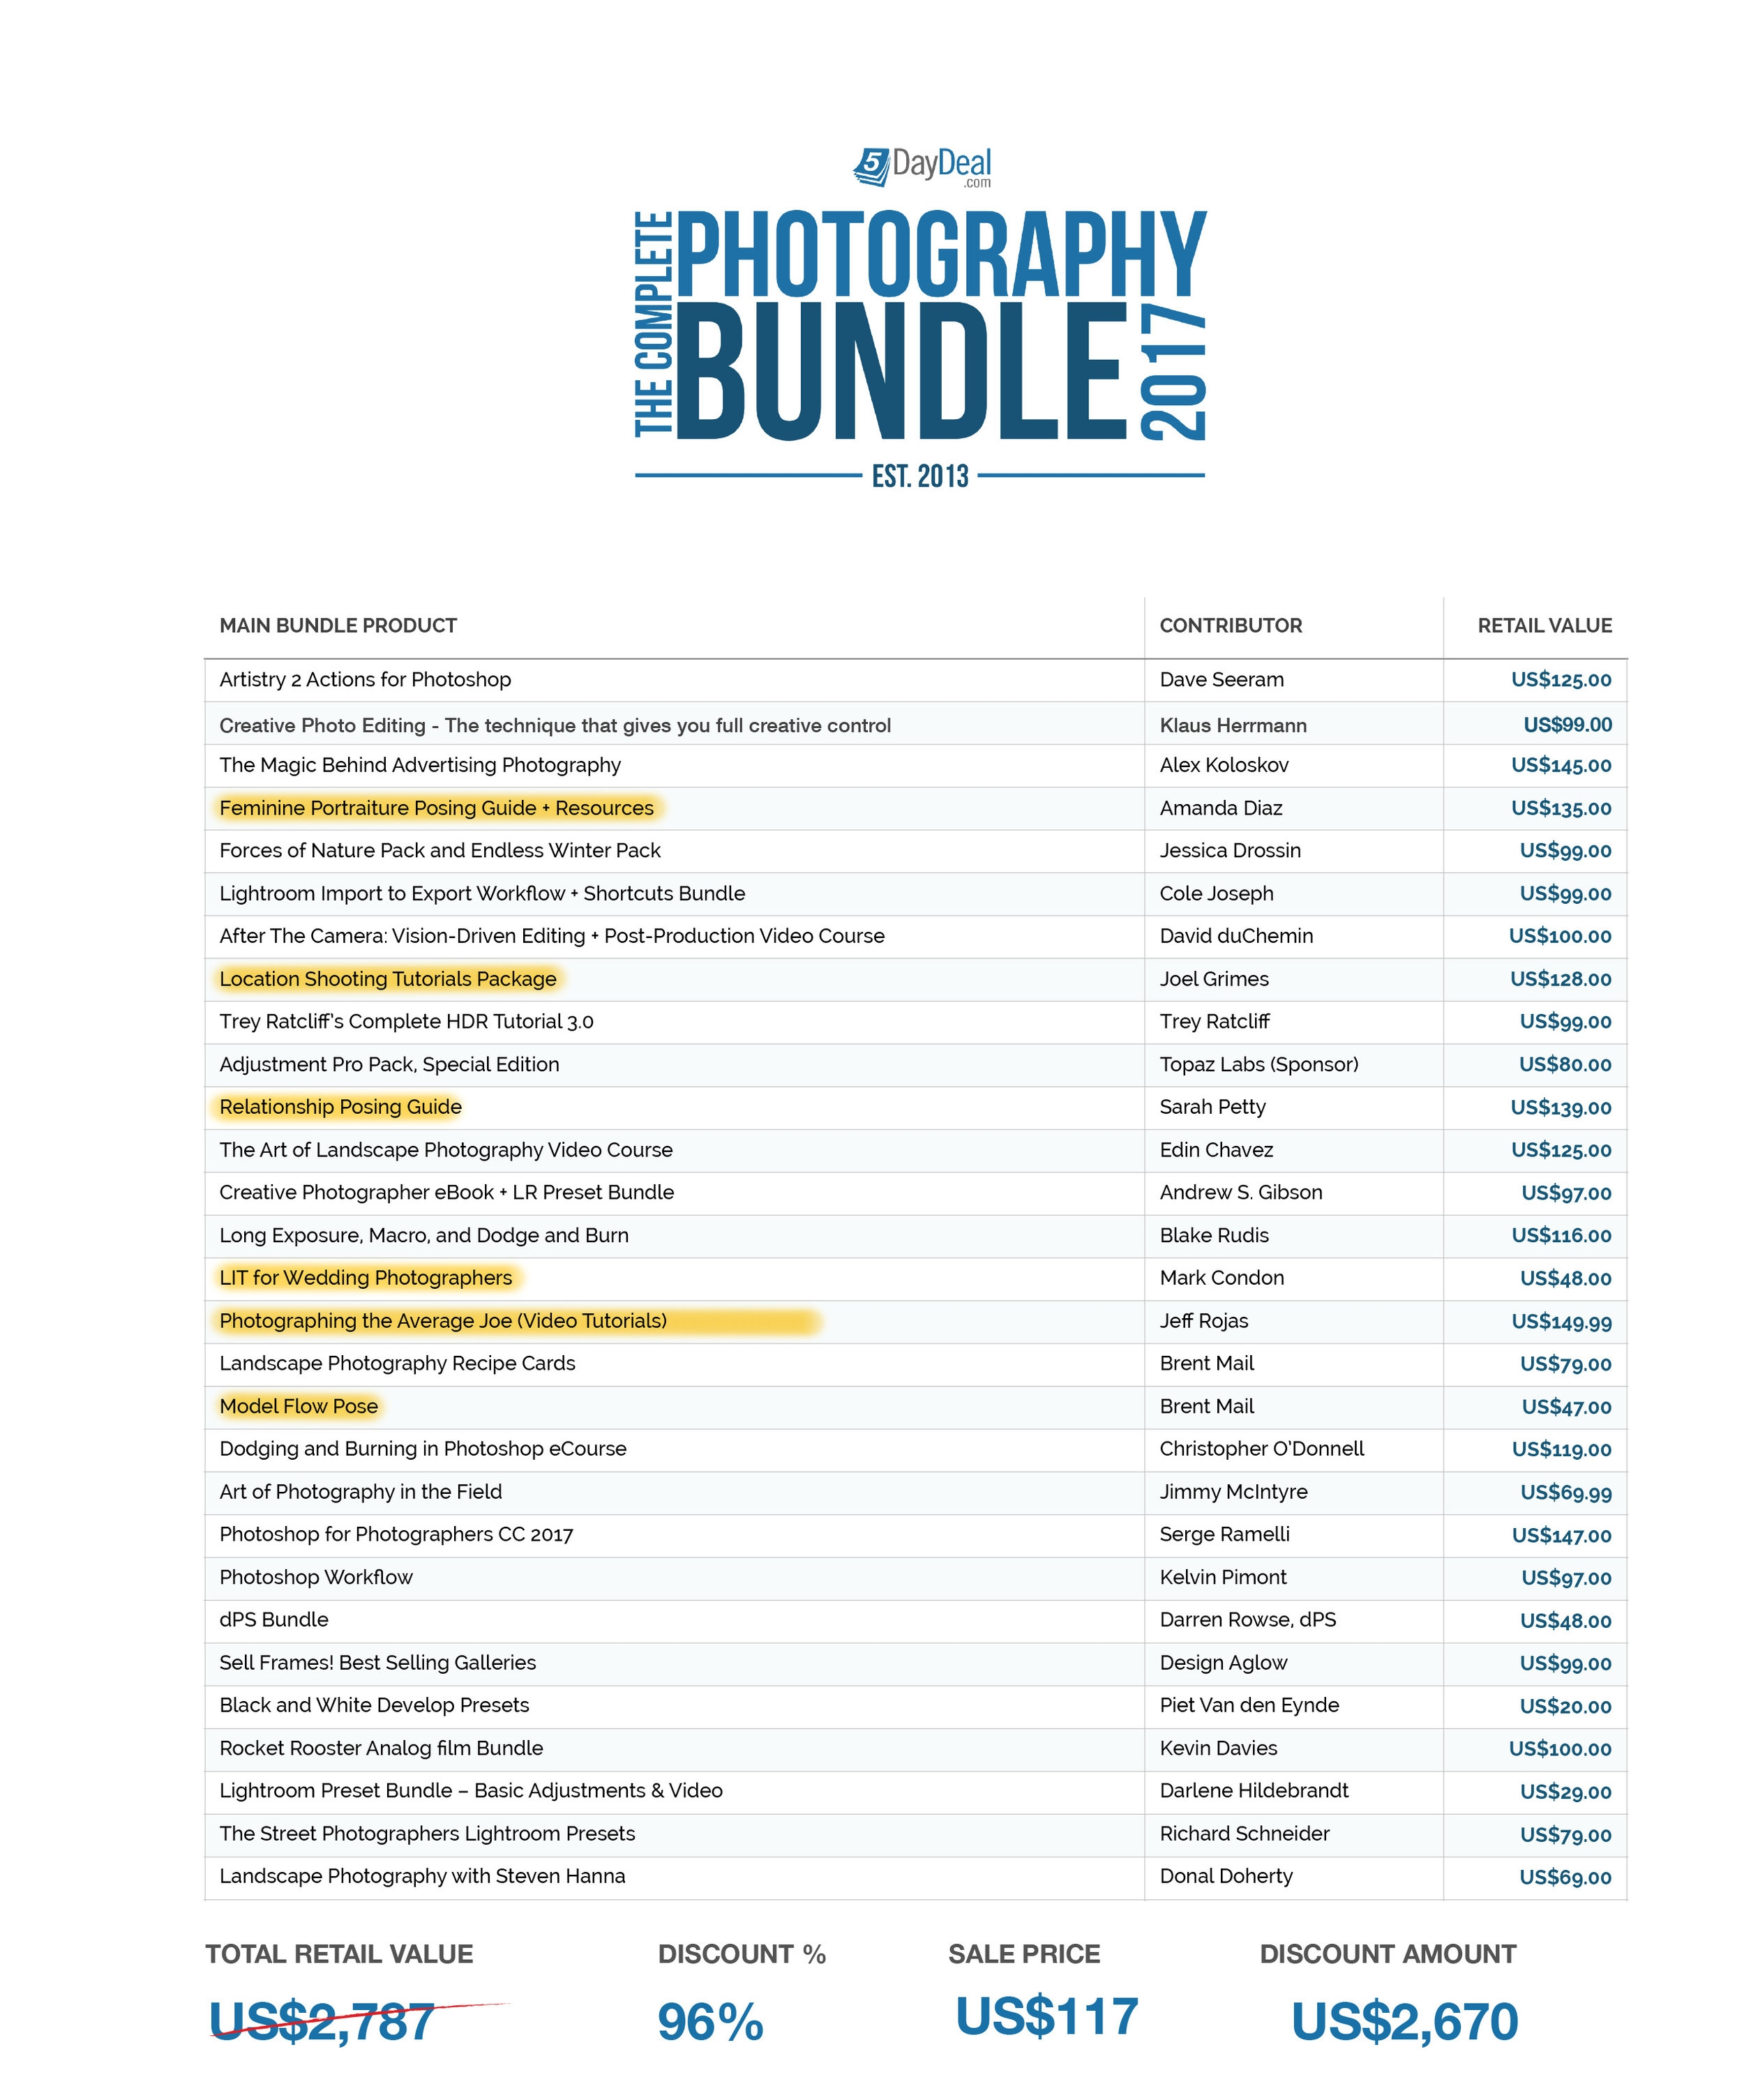 5DayDeal -  Complete Photography Bundle 2017 - Full Product List